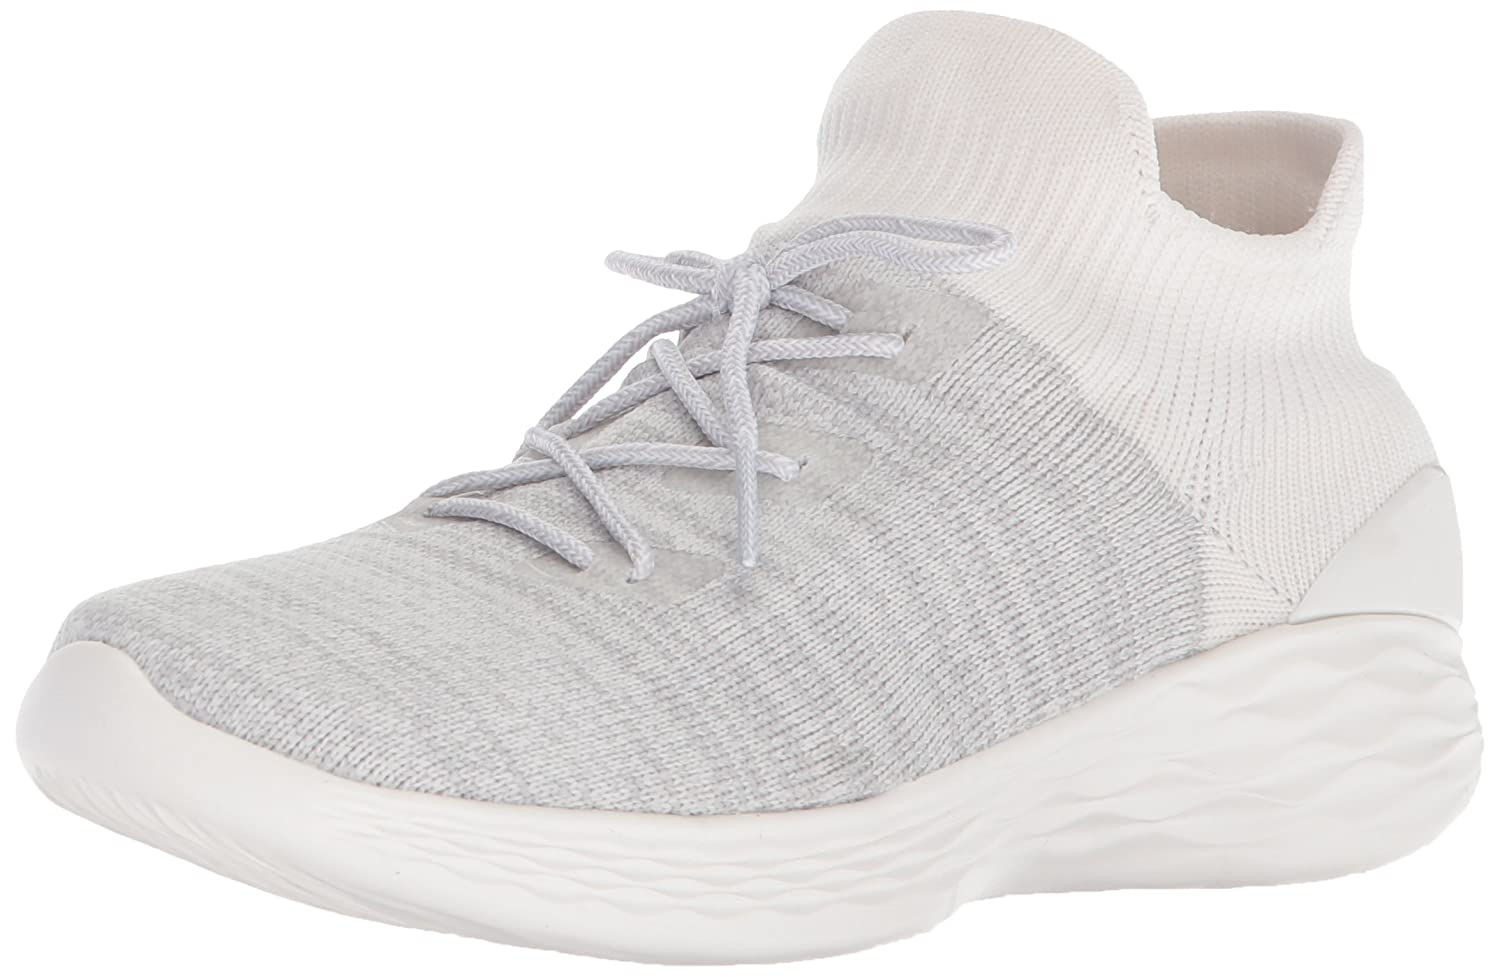 Skechers Women's You-14966 Sneaker B072R1GTMC 6 B(M) US|White